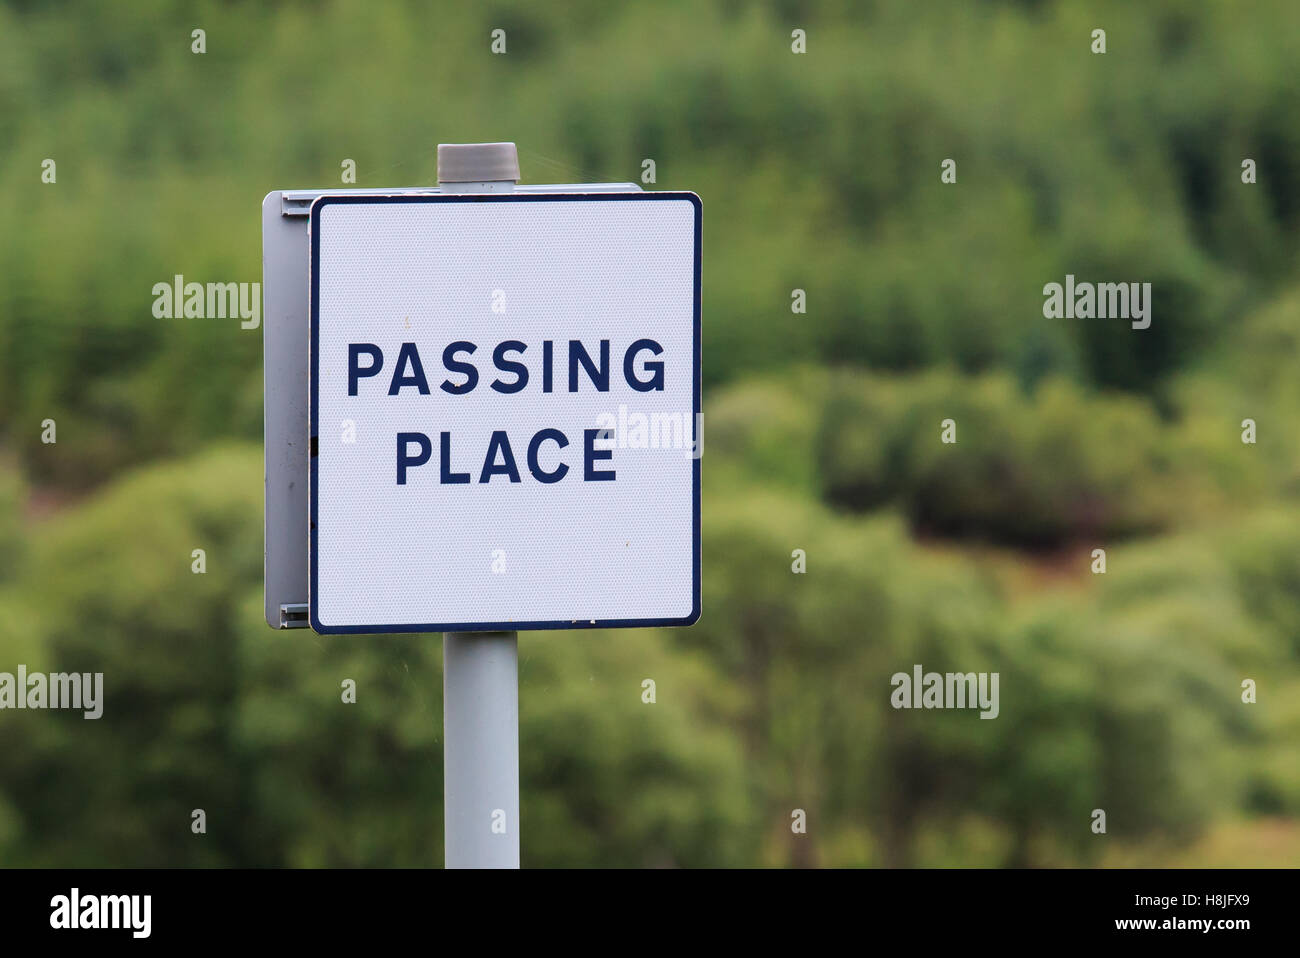 Square white road sign advising passing place - Stock Image